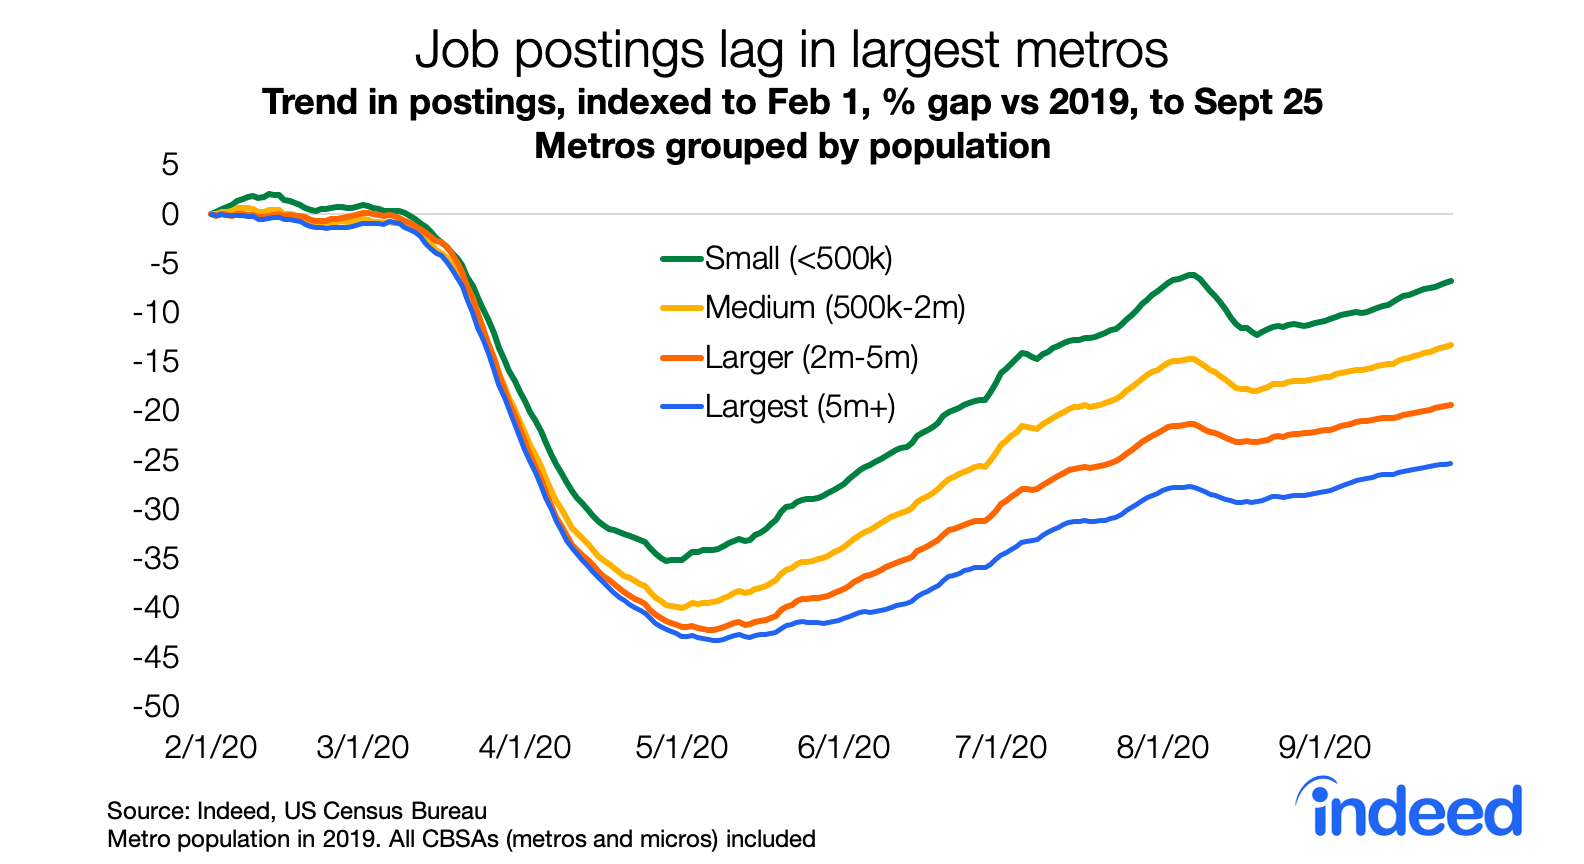 Line graph showing job postings lag in largest metros in the US